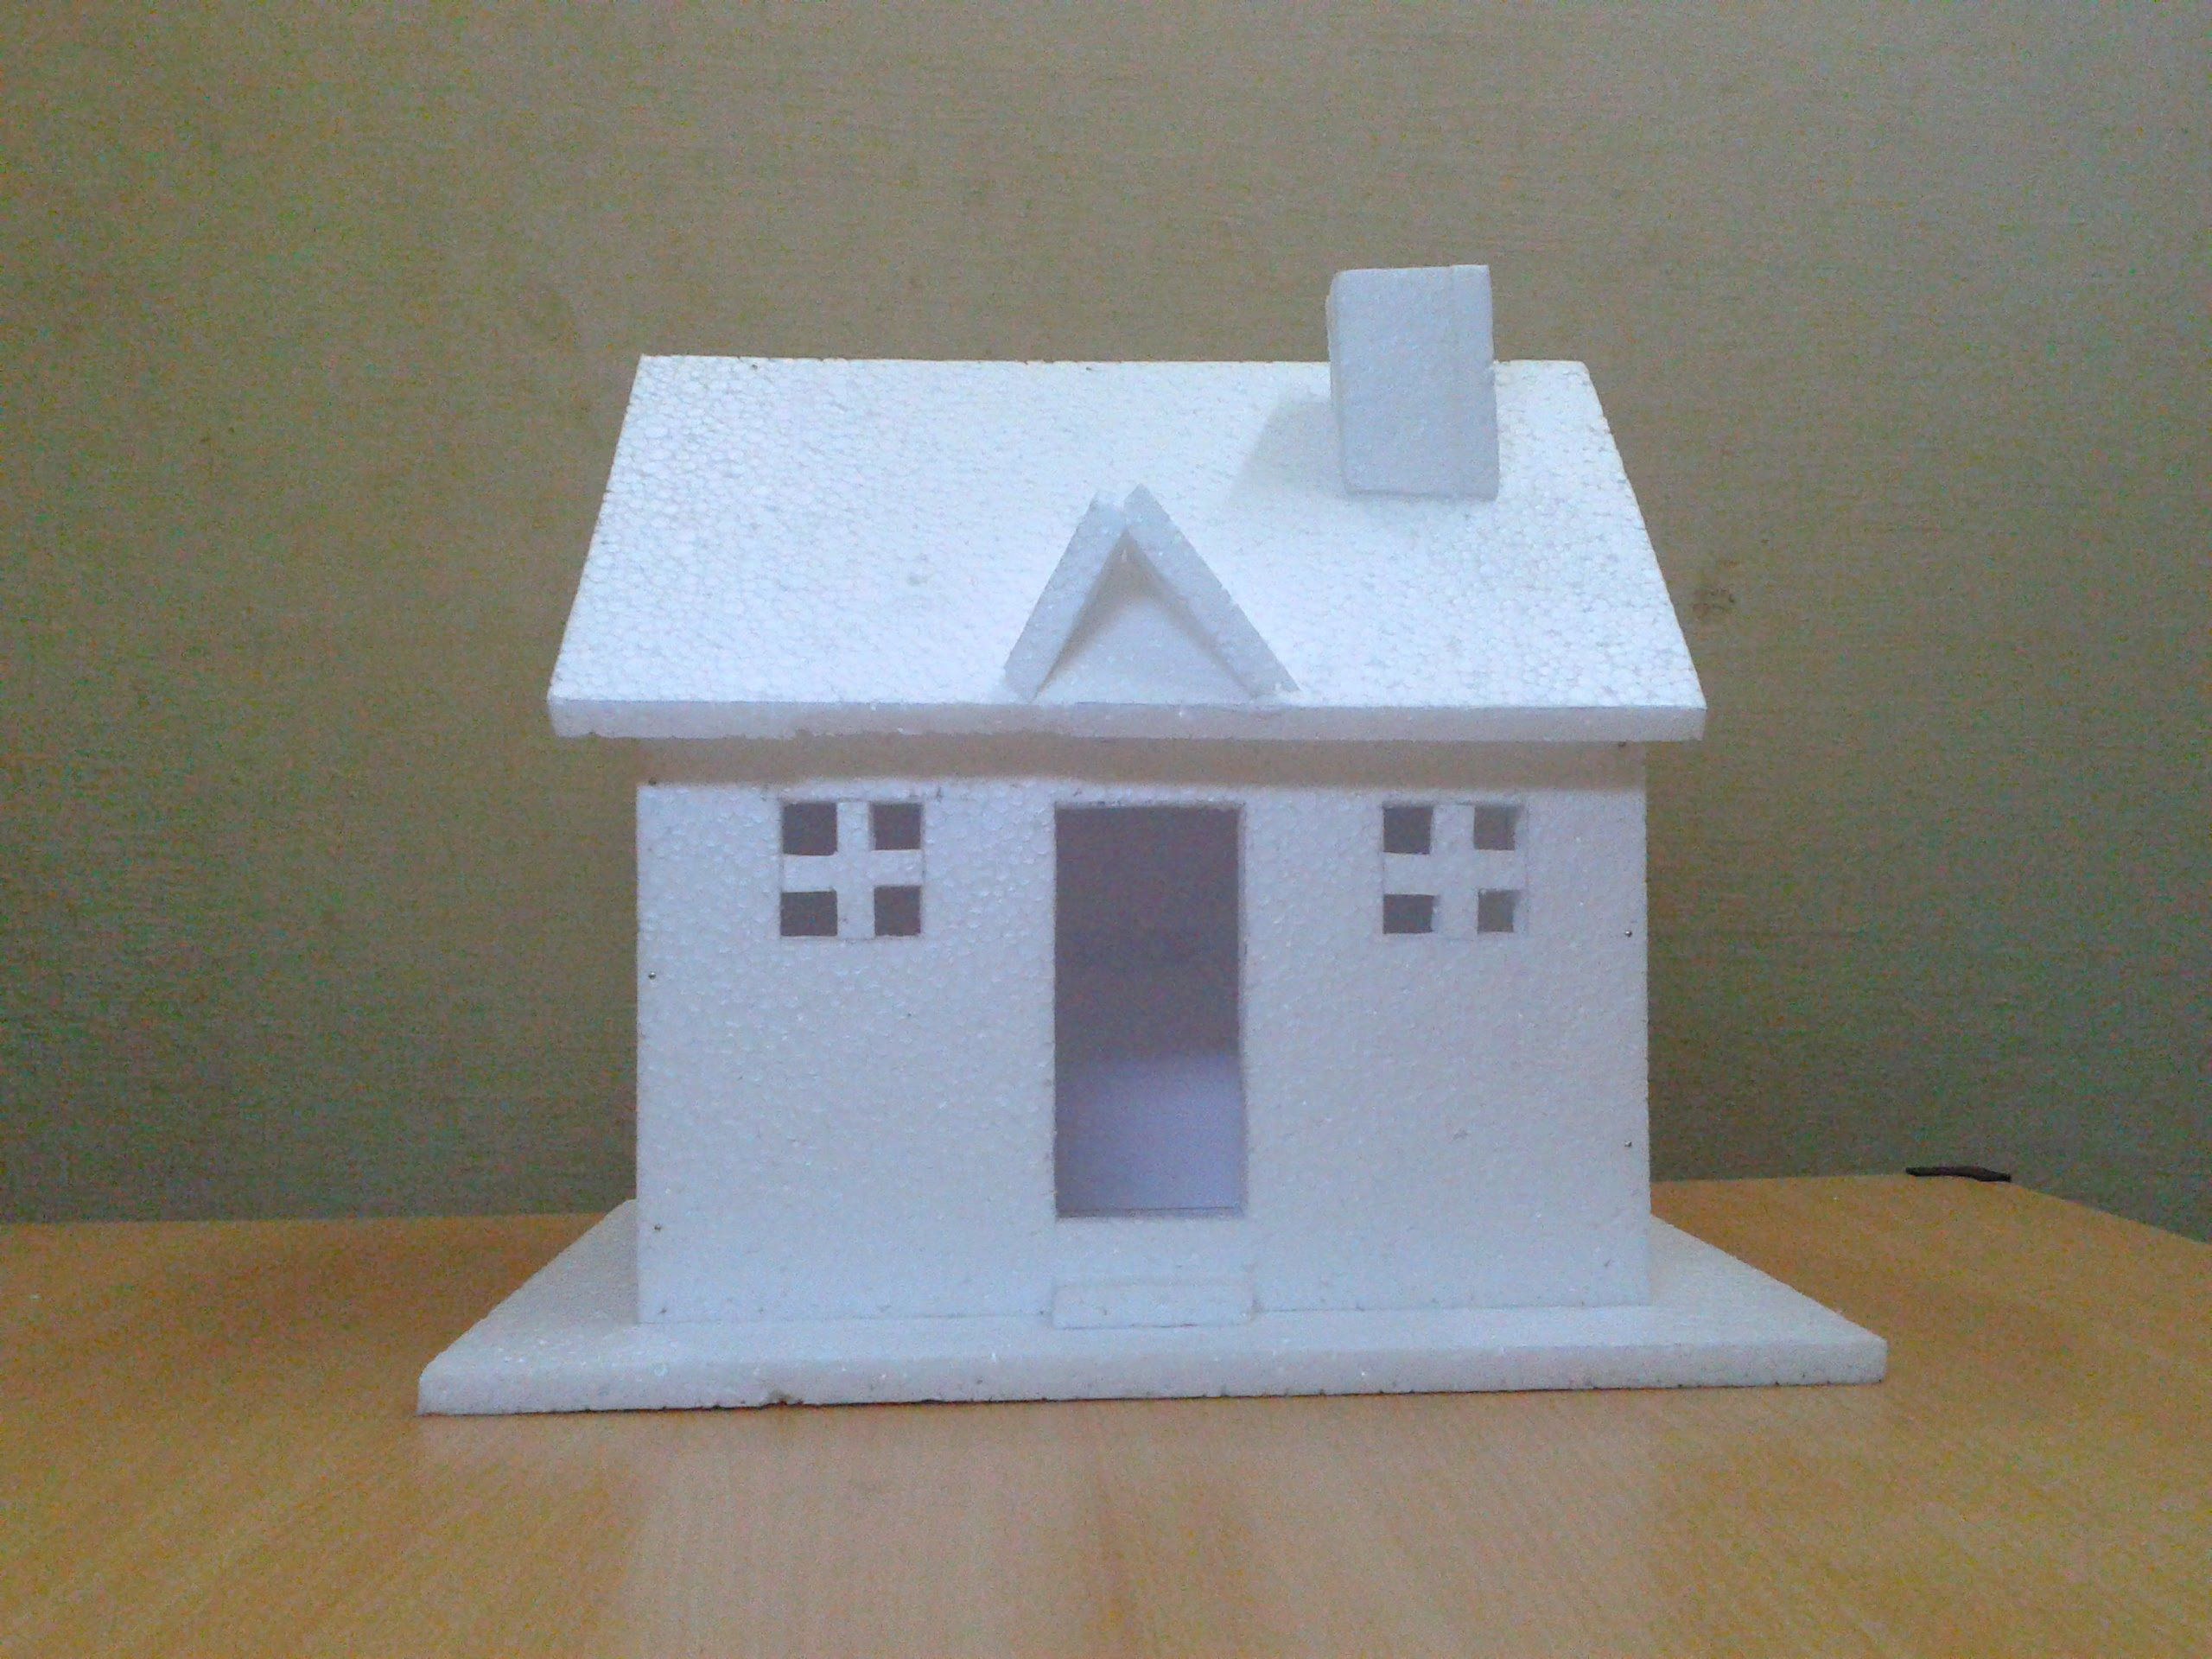 Making a house model out of paper